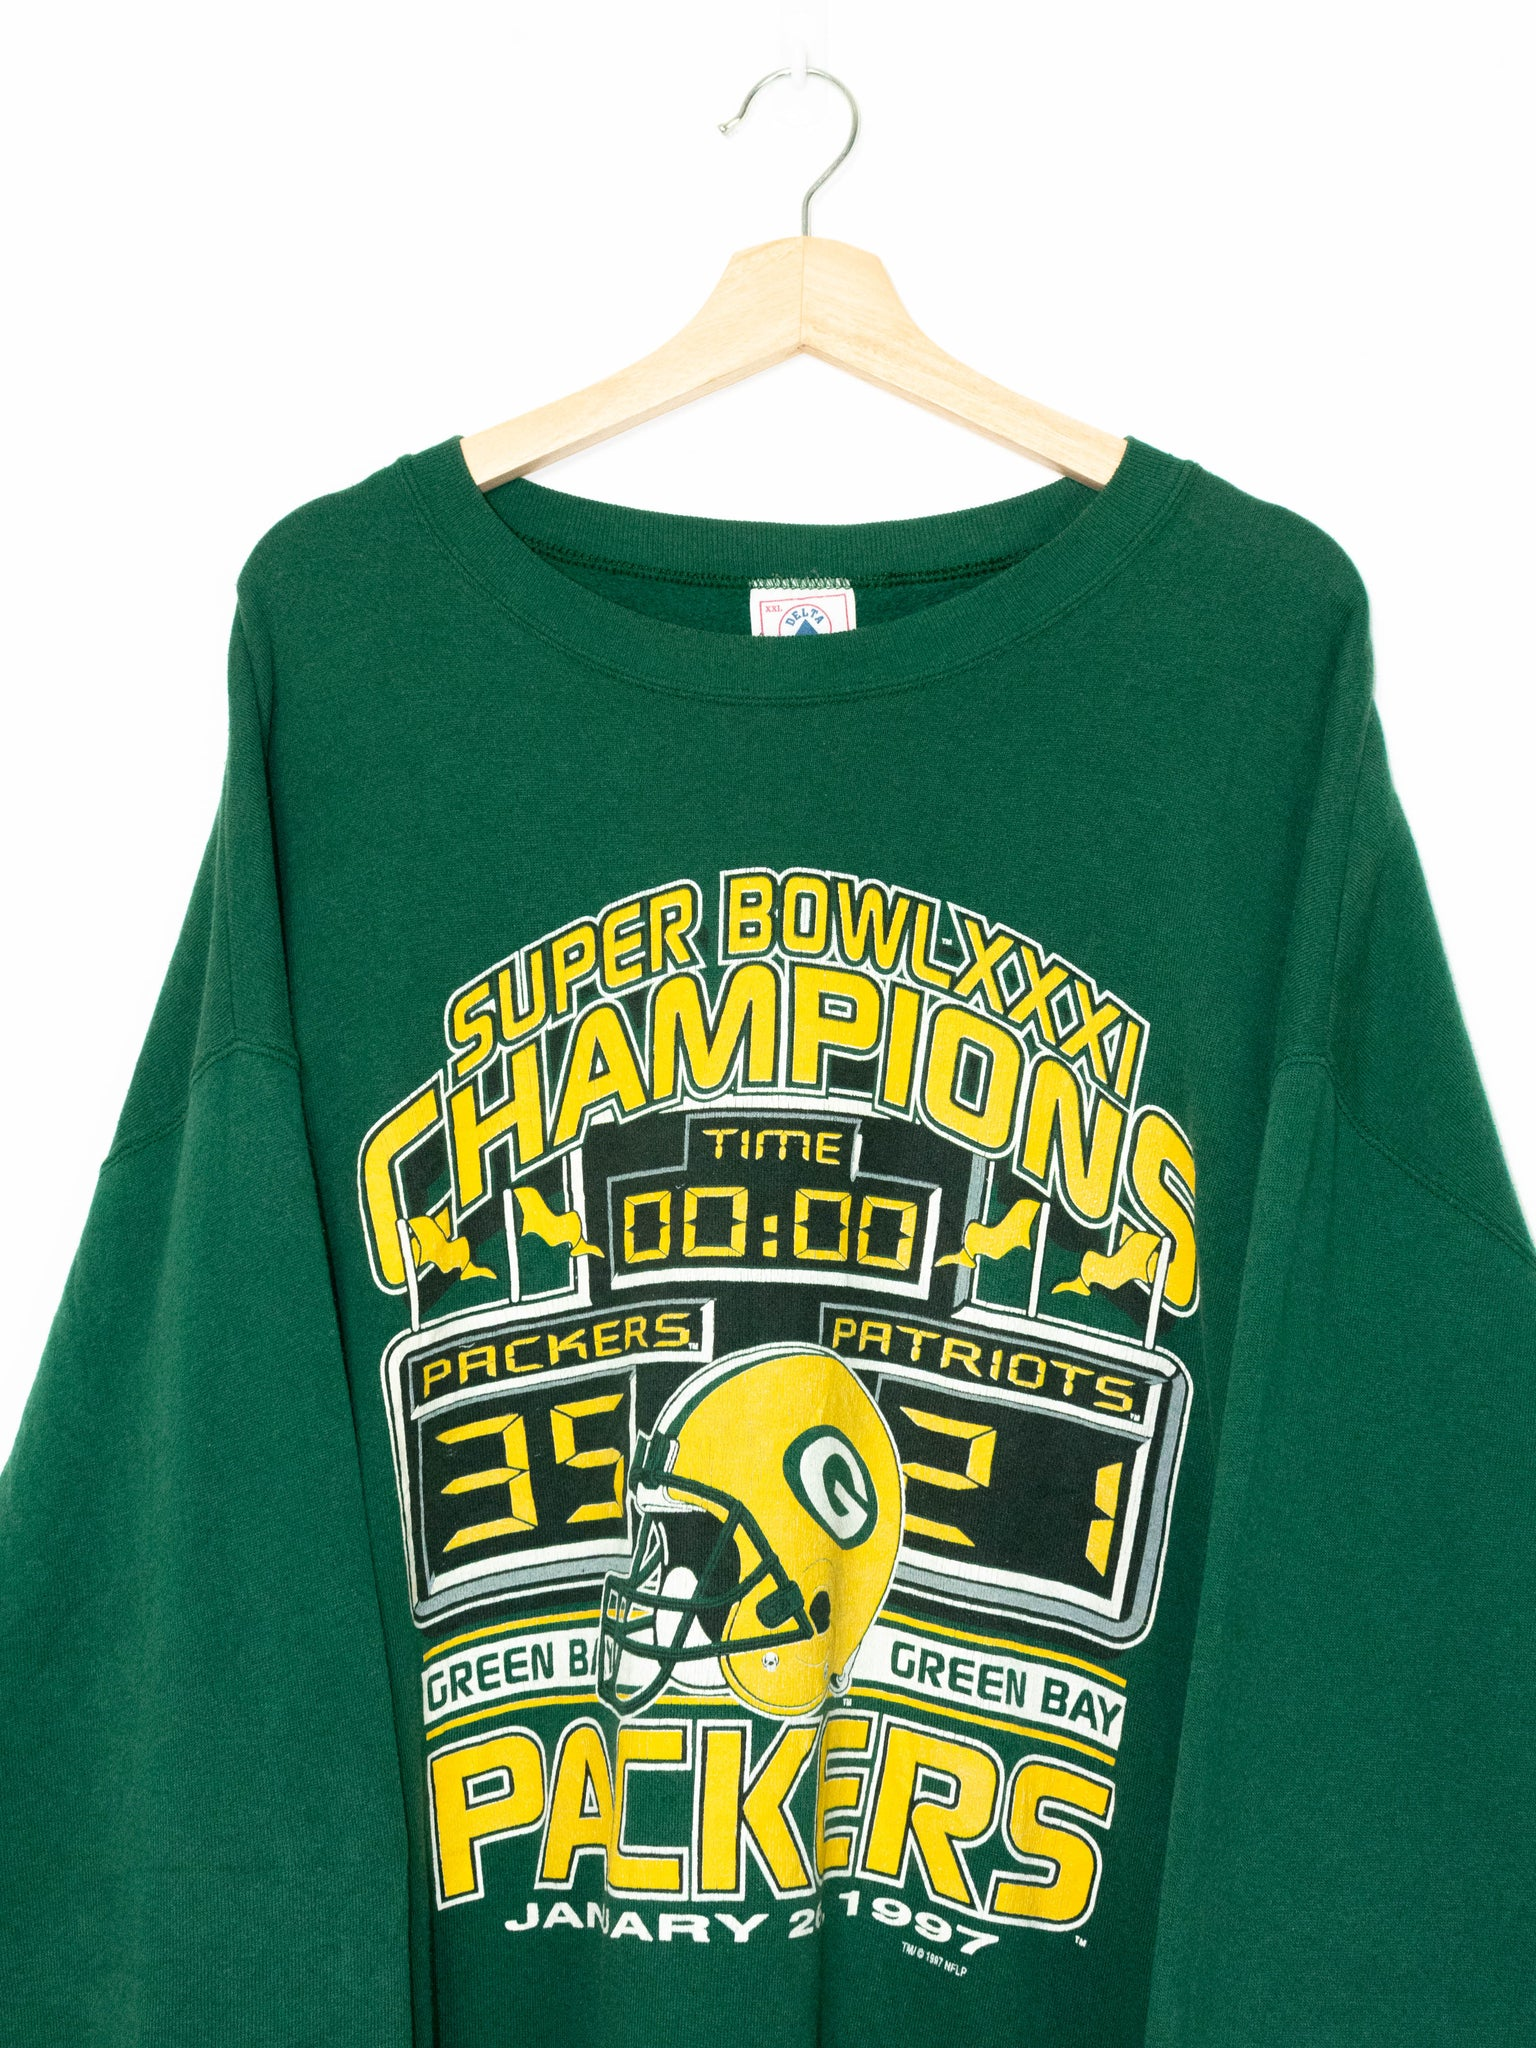 Vintage Green Bay Packers sweater 1997' size: XXL